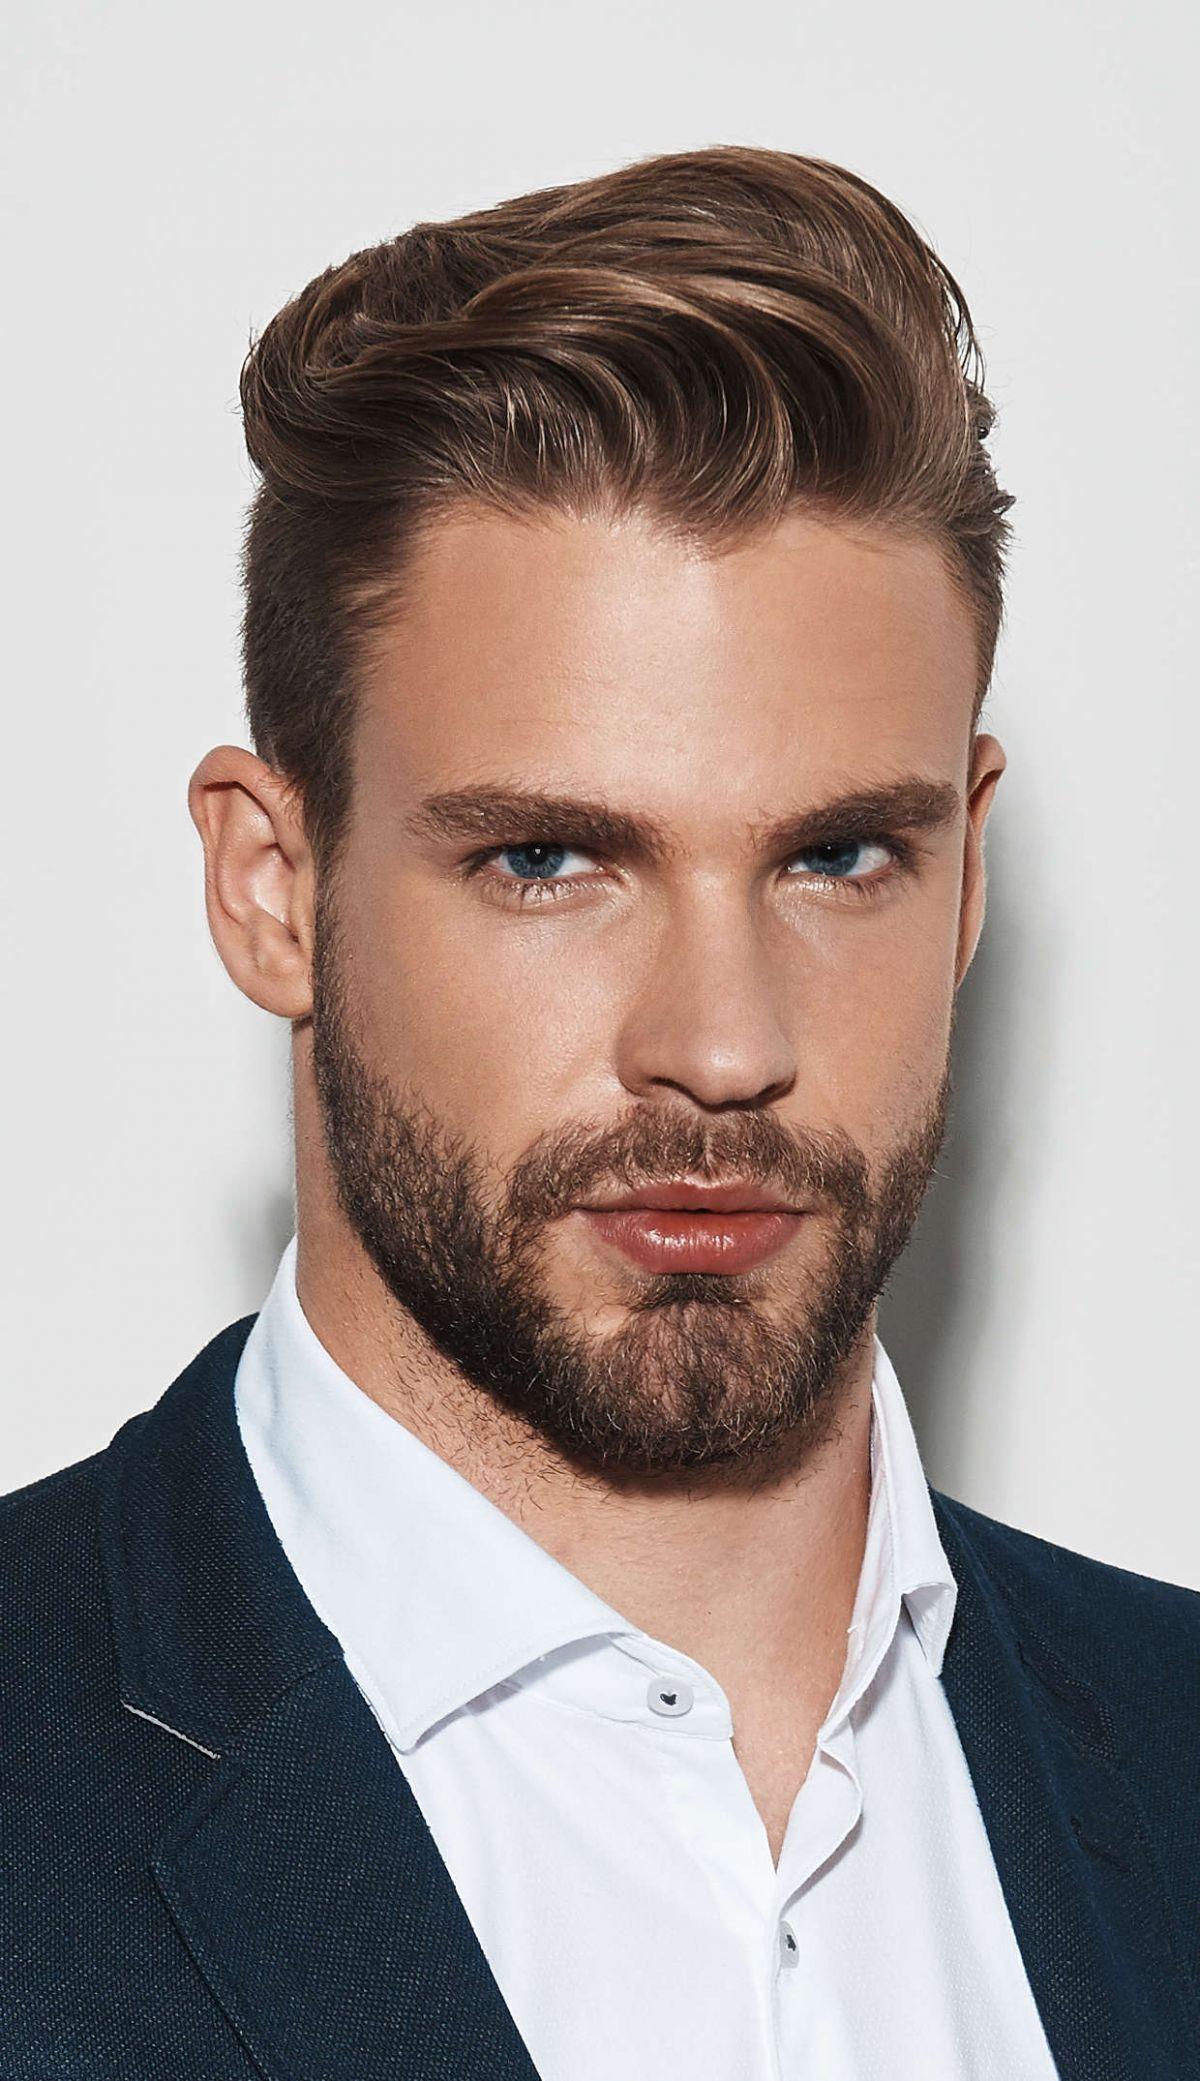 Top 30 Business Hairstyles For Men Mens Hairstyles Medium Business Hairstyles Straight Hairstyles